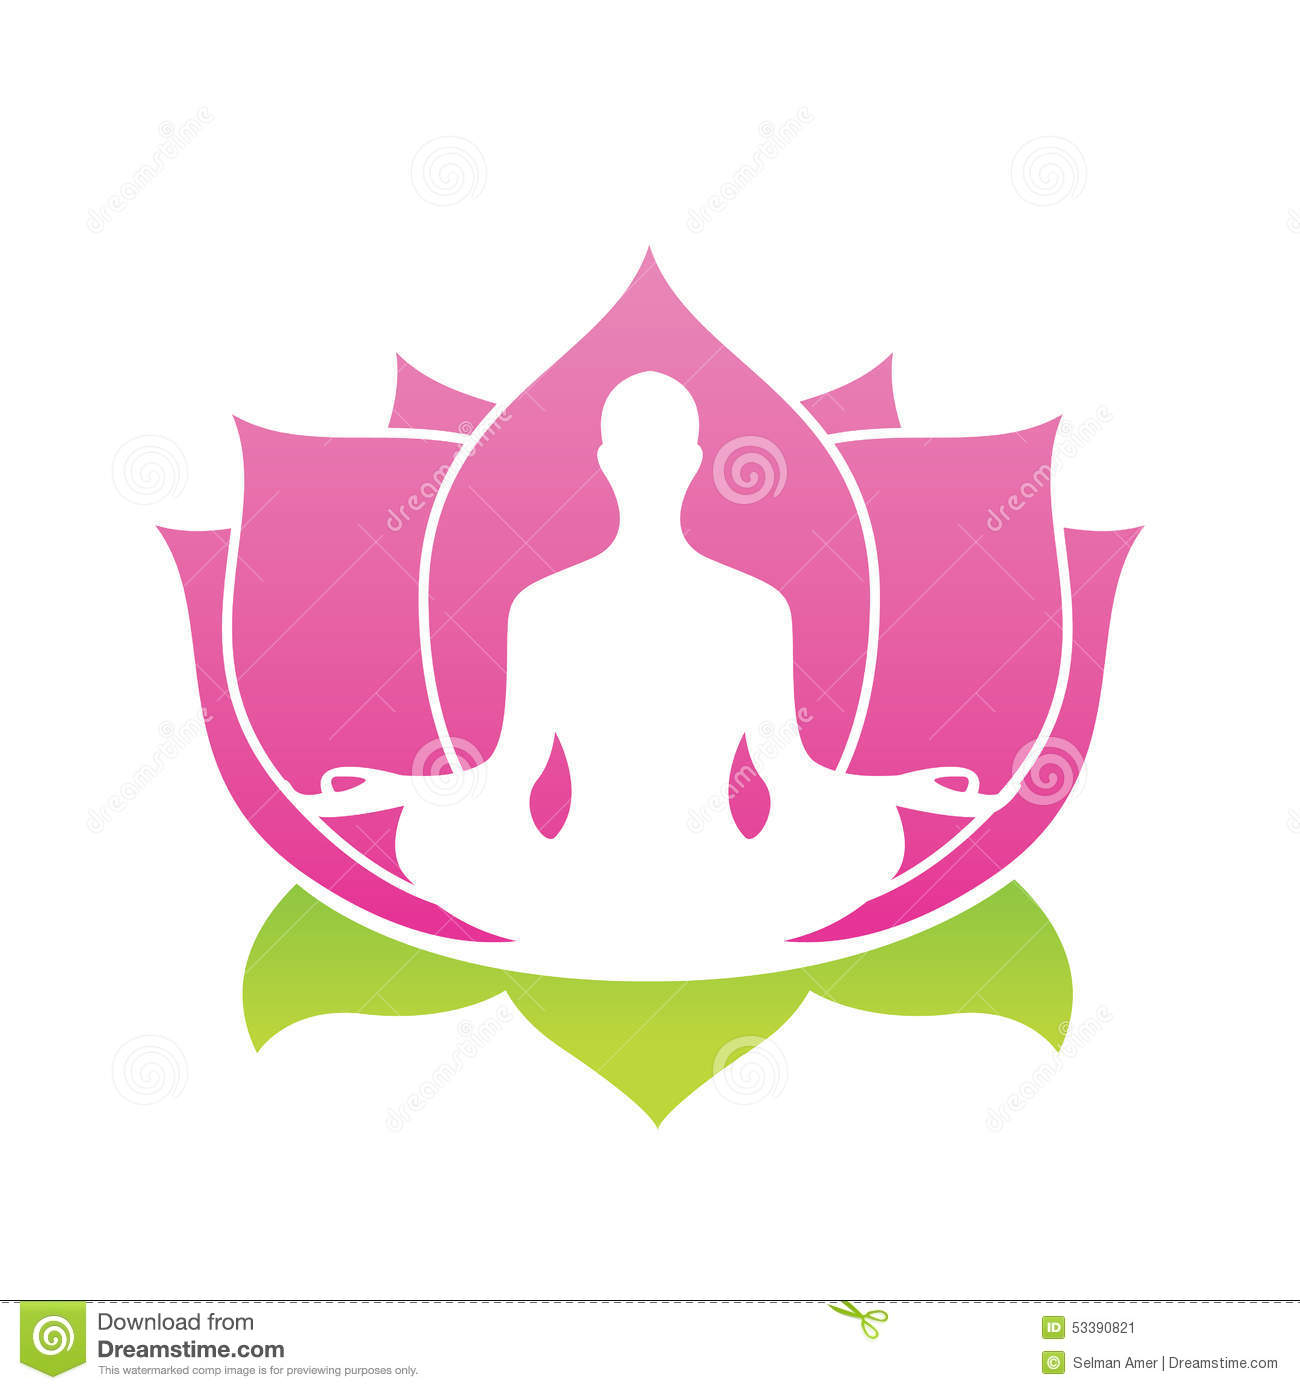 2313 Lotus free clipart.